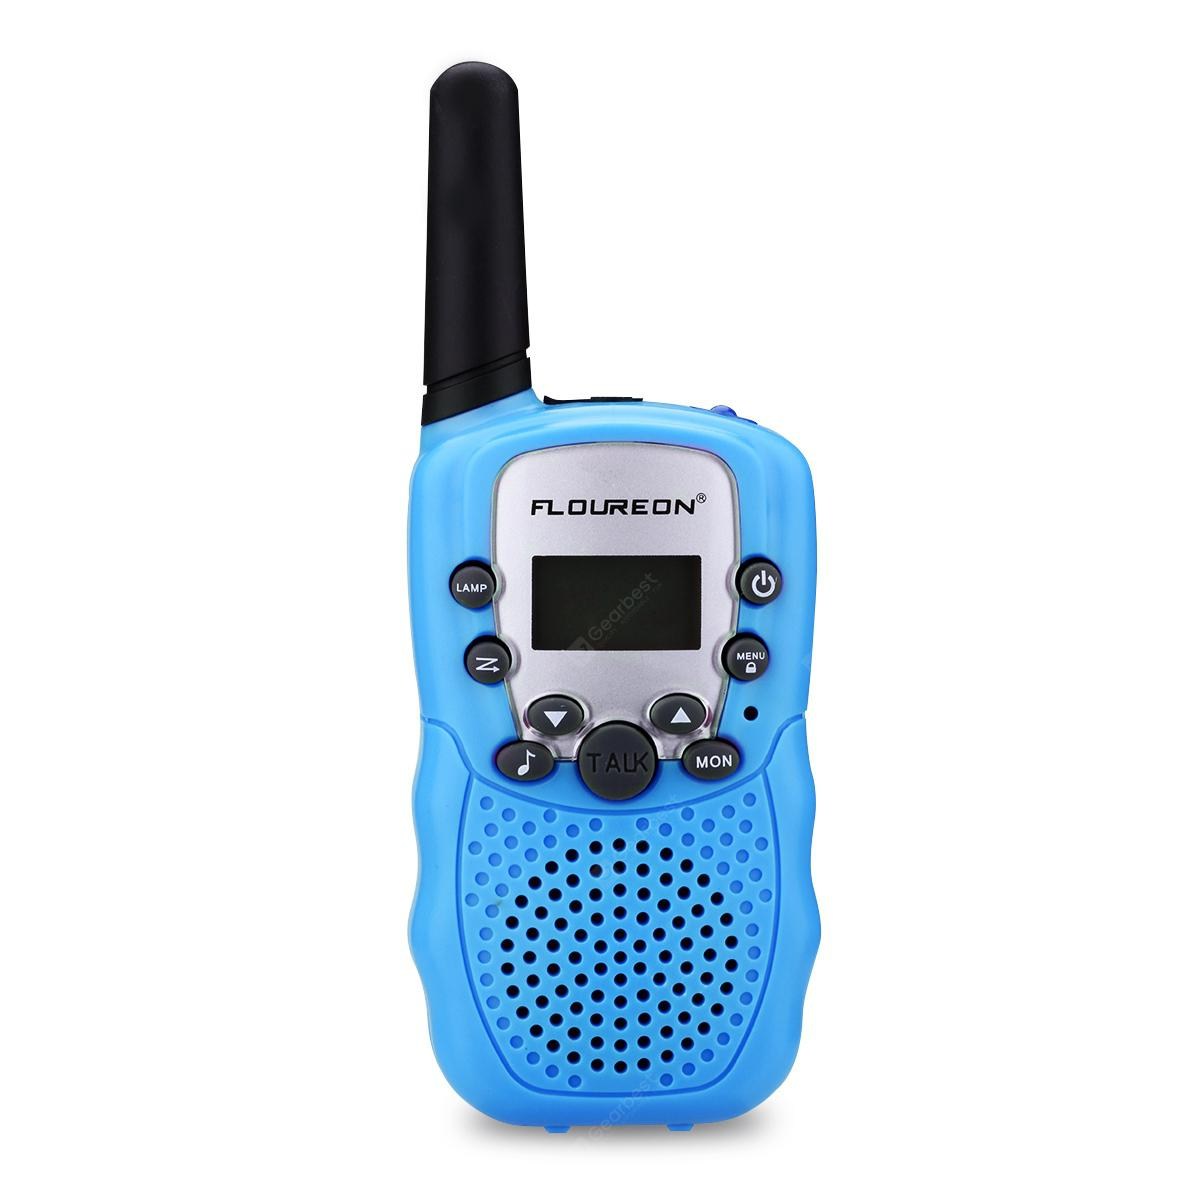 FLOUREON 8 Channel Twin Walkie Talkies UHF400-470MHZ 2-Way Radio 3 Km Range Blue - BLUE